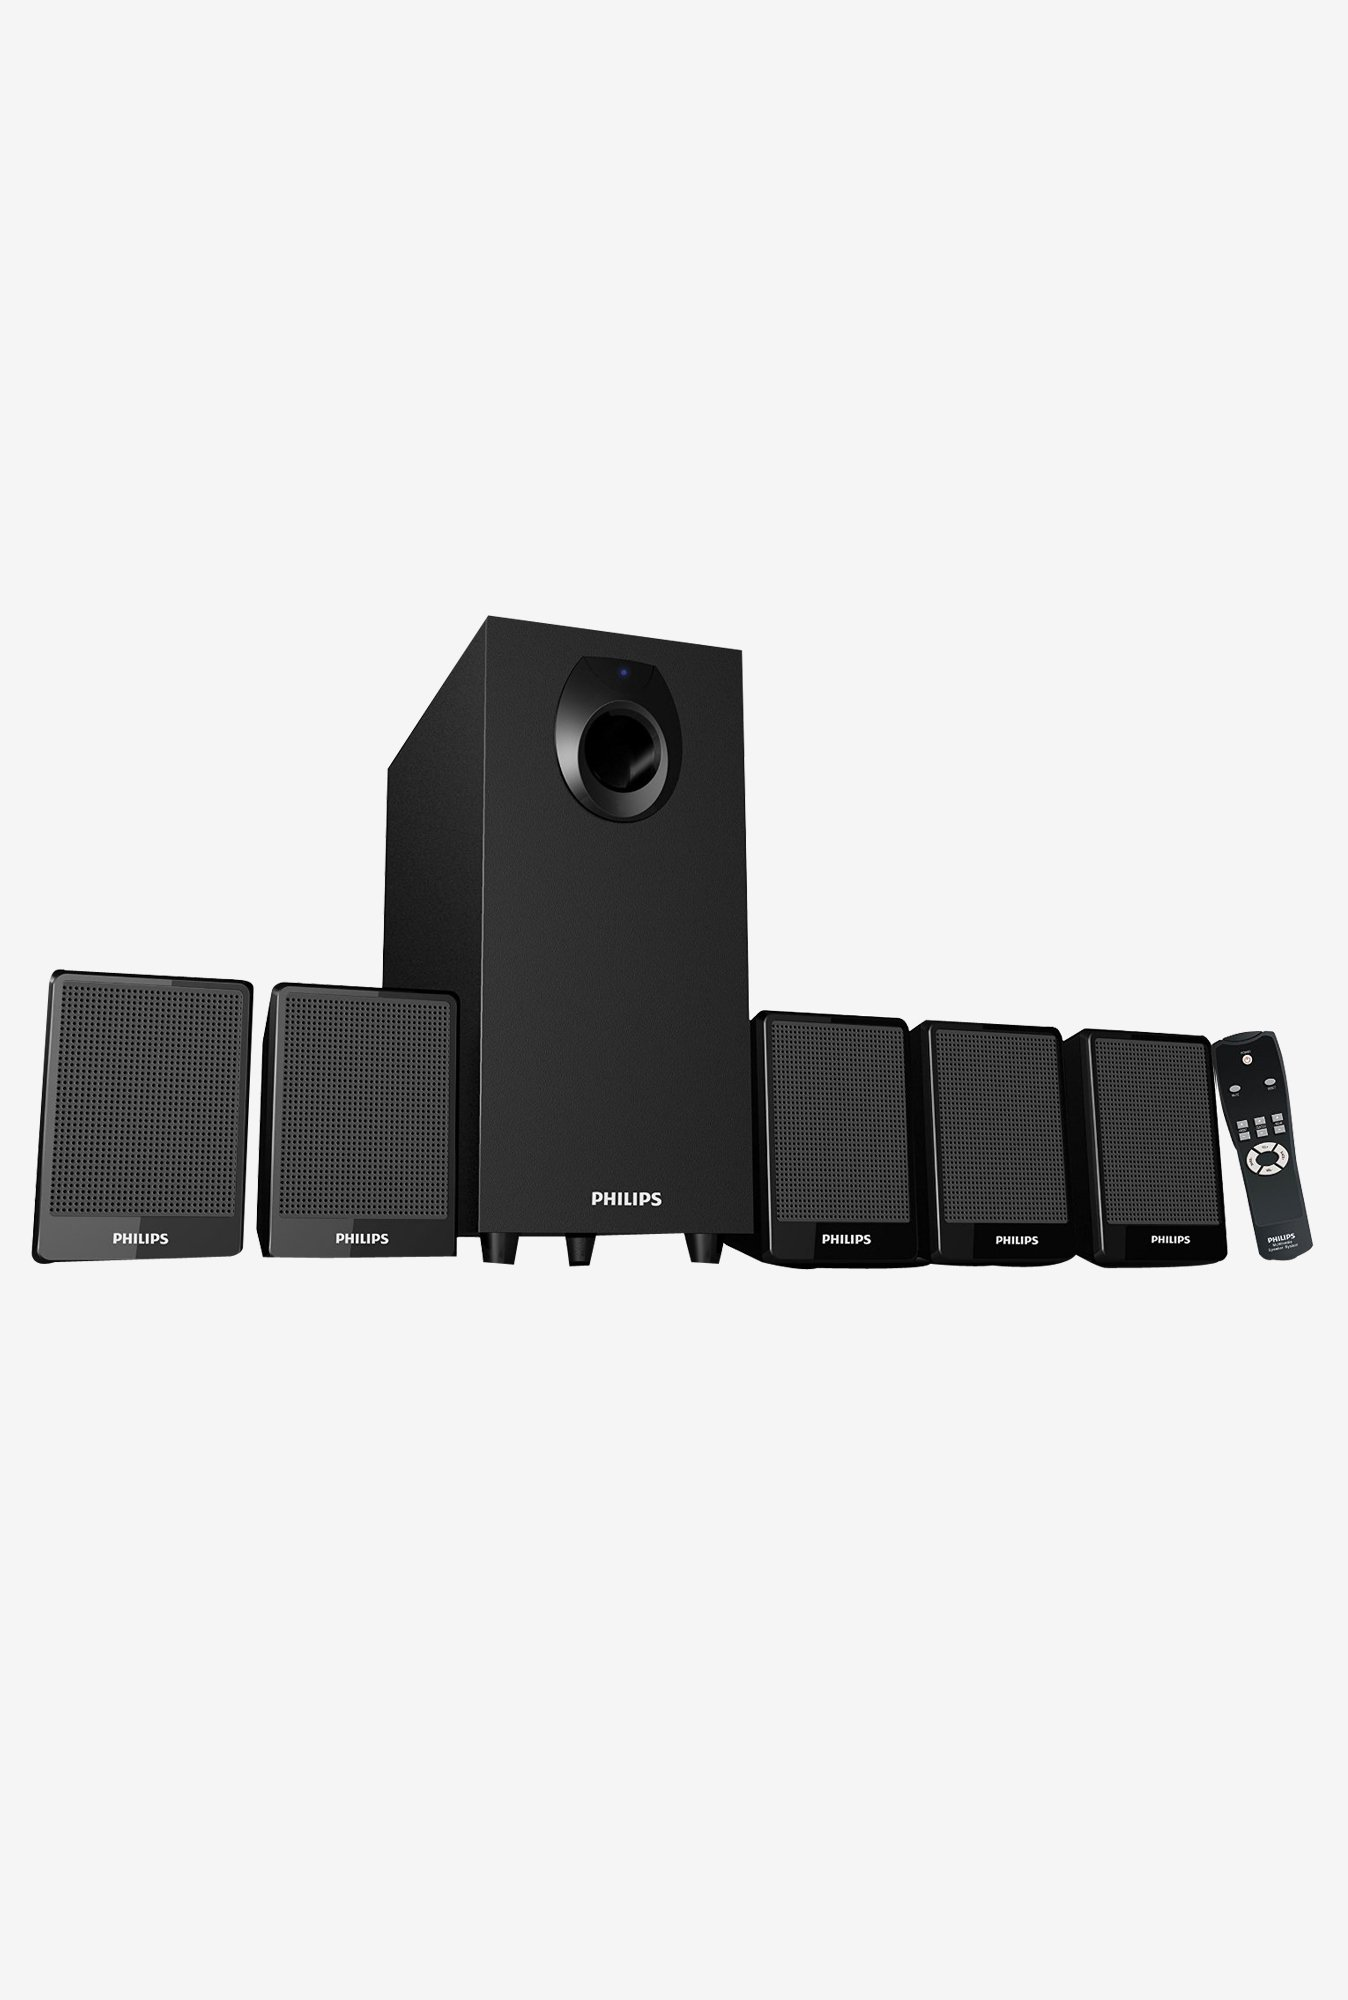 Philips DSP 2800 Speaker System with Sub Woofer (Black)